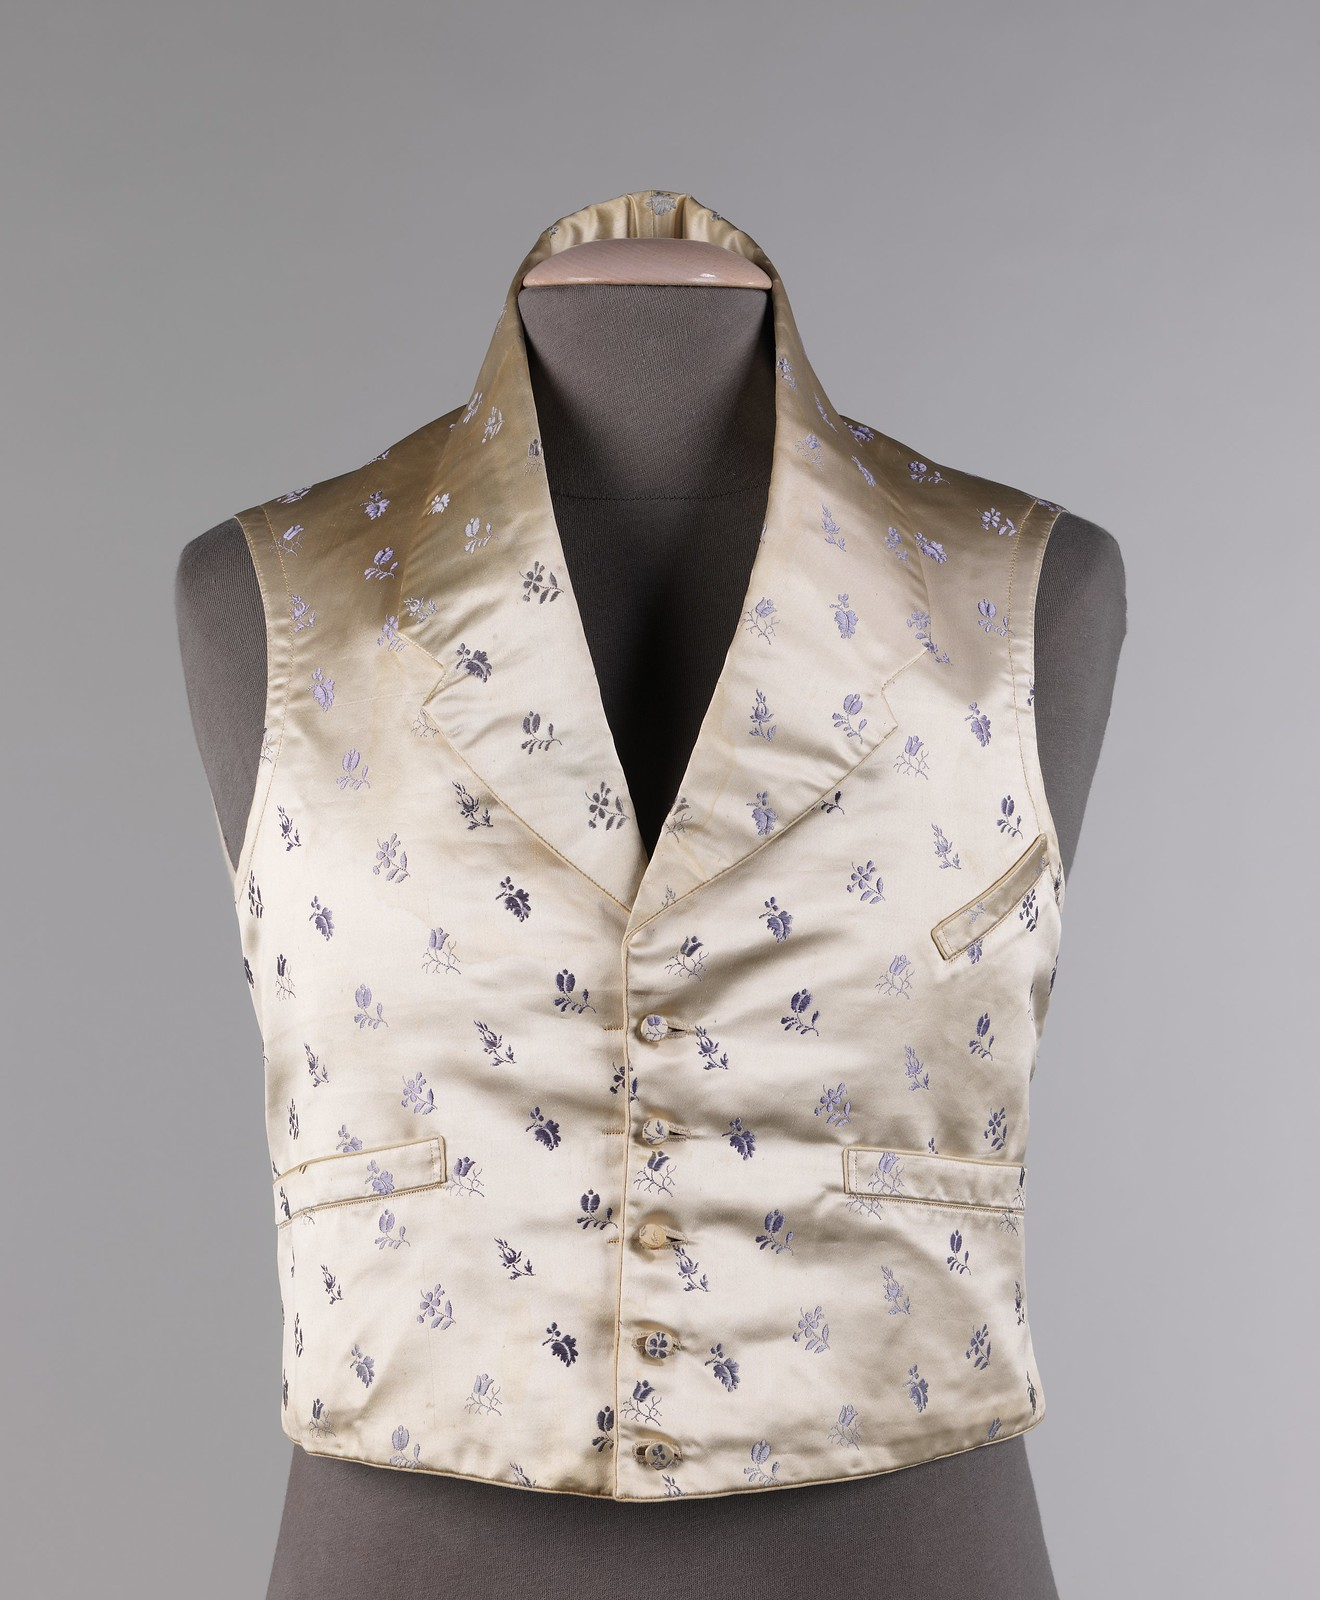 1830. American. silk, cotton. metmuseum